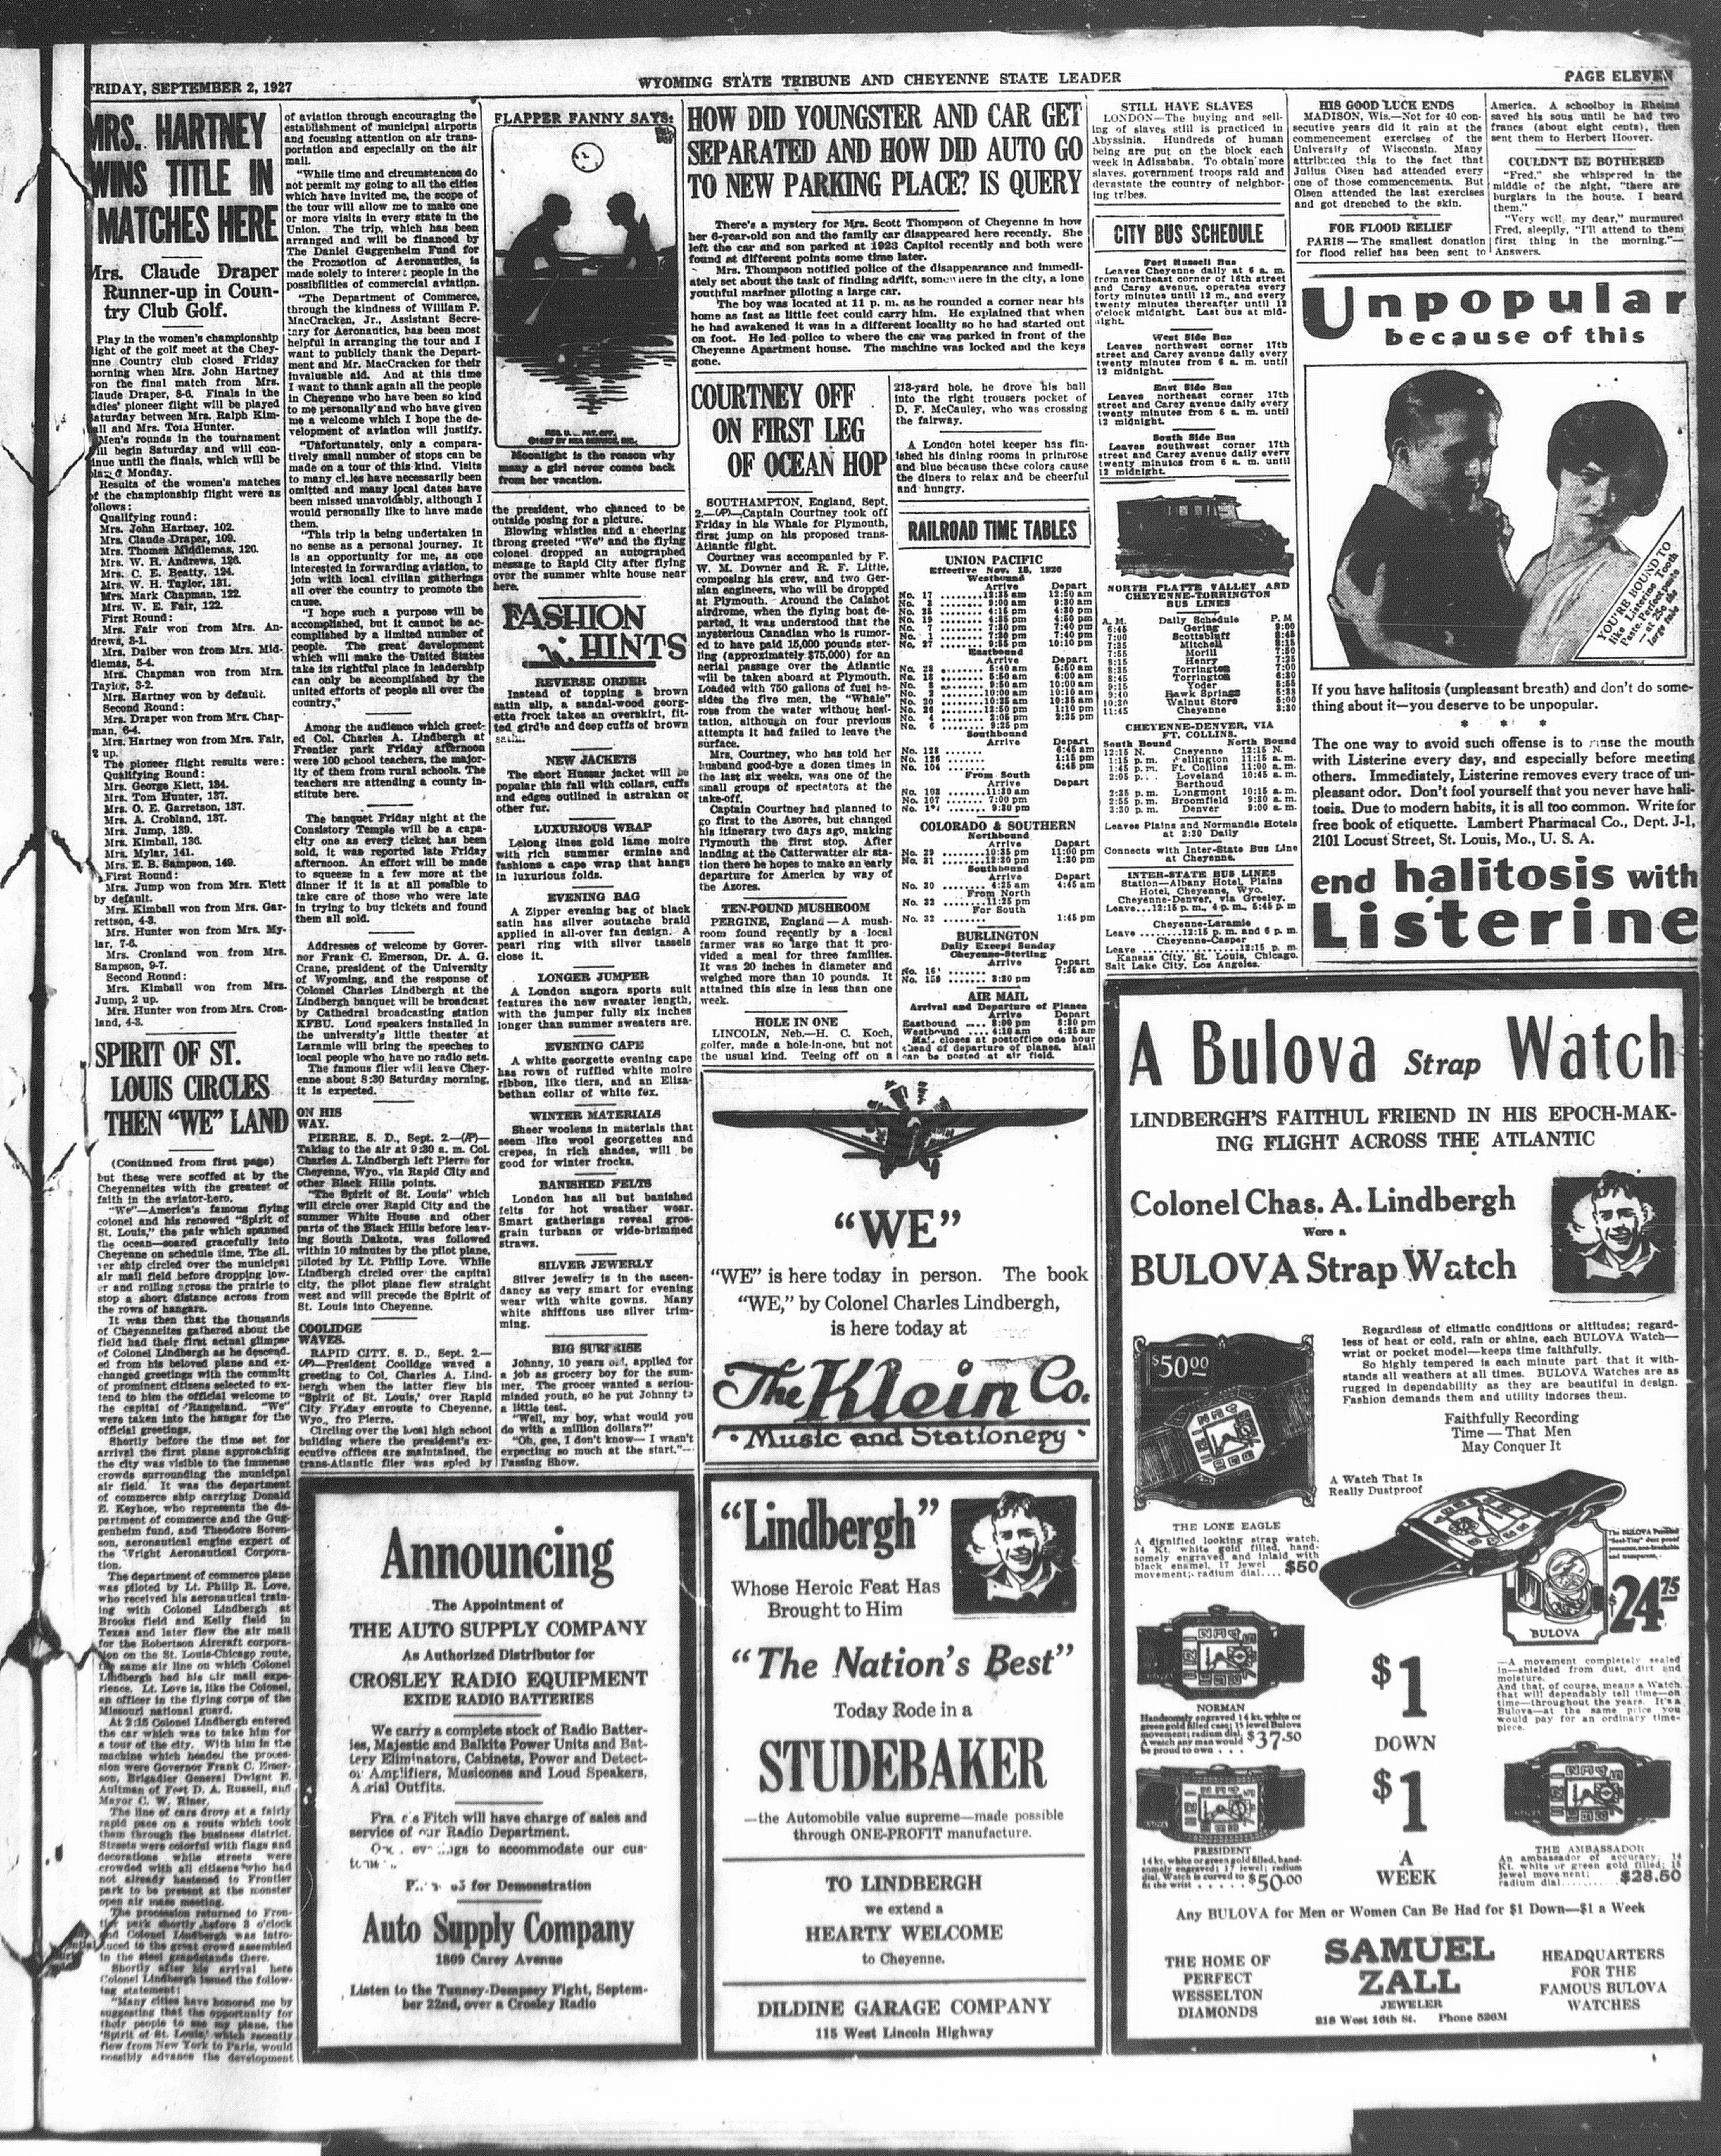 Ad for the Klein Music Co, Dildine Garage Company and Sam Zall Jewelers announcing ties of their products to Lindgbergh